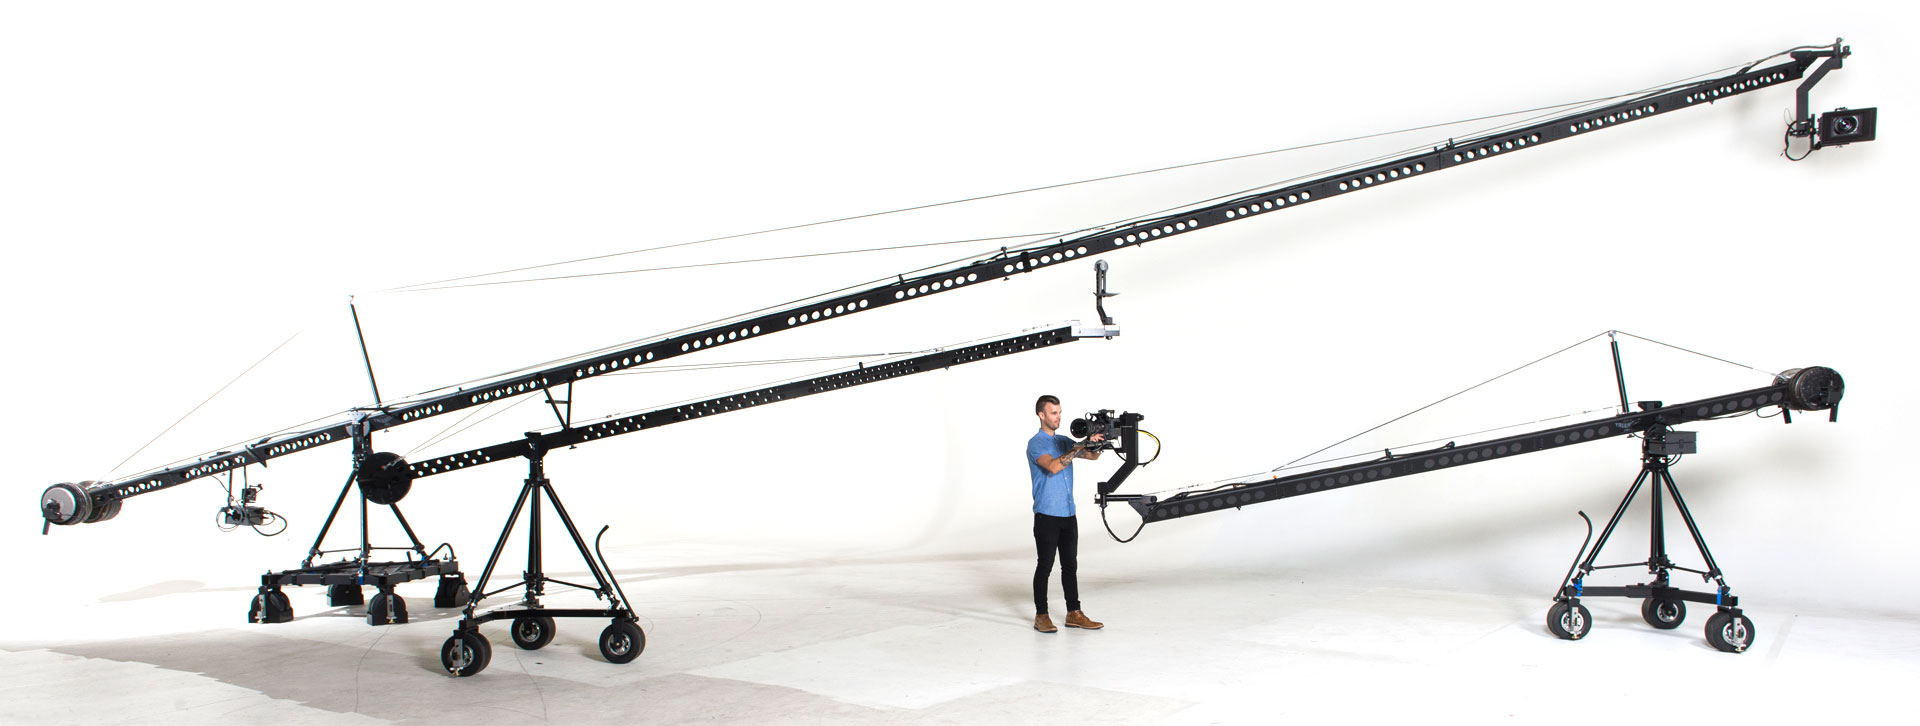 The Original Jimmy Jib Stanton Video Services Standard Aircraft Wire Harness Installation Lengths Adaptable To A Variety Of Conditions